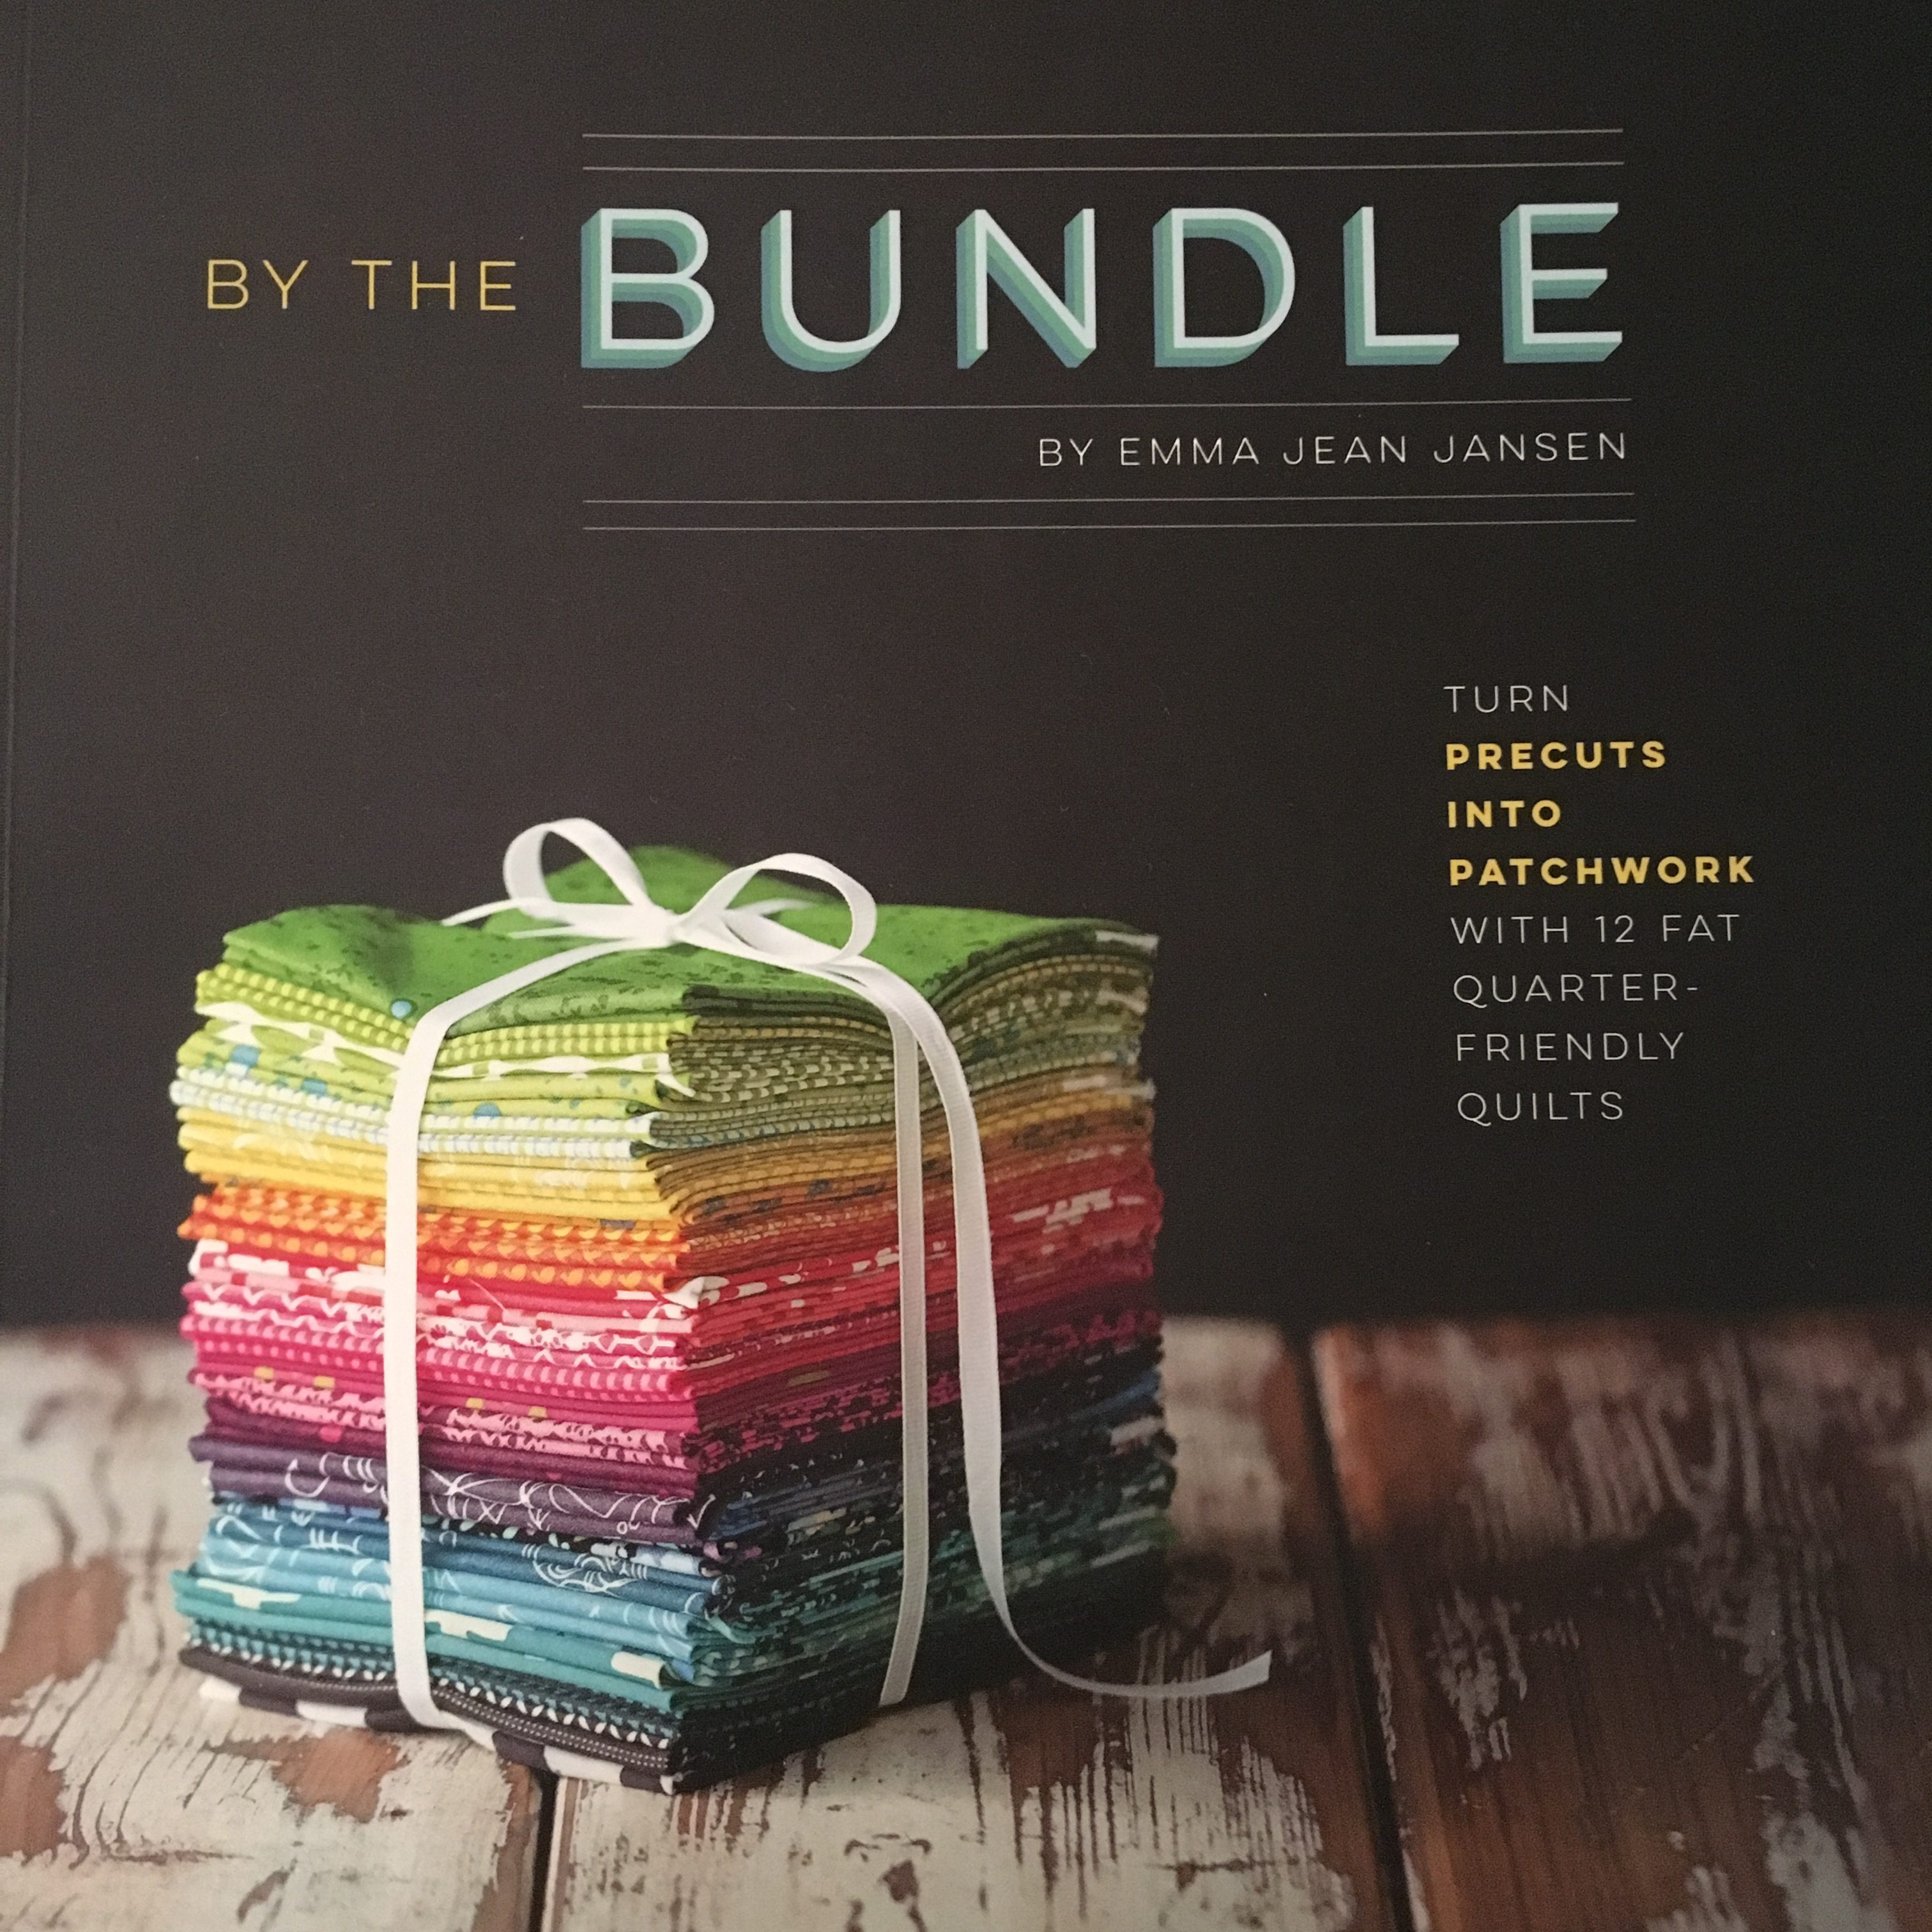 Book Review: 'By The Bundle' by Emma Jean Jansen - Melbourne